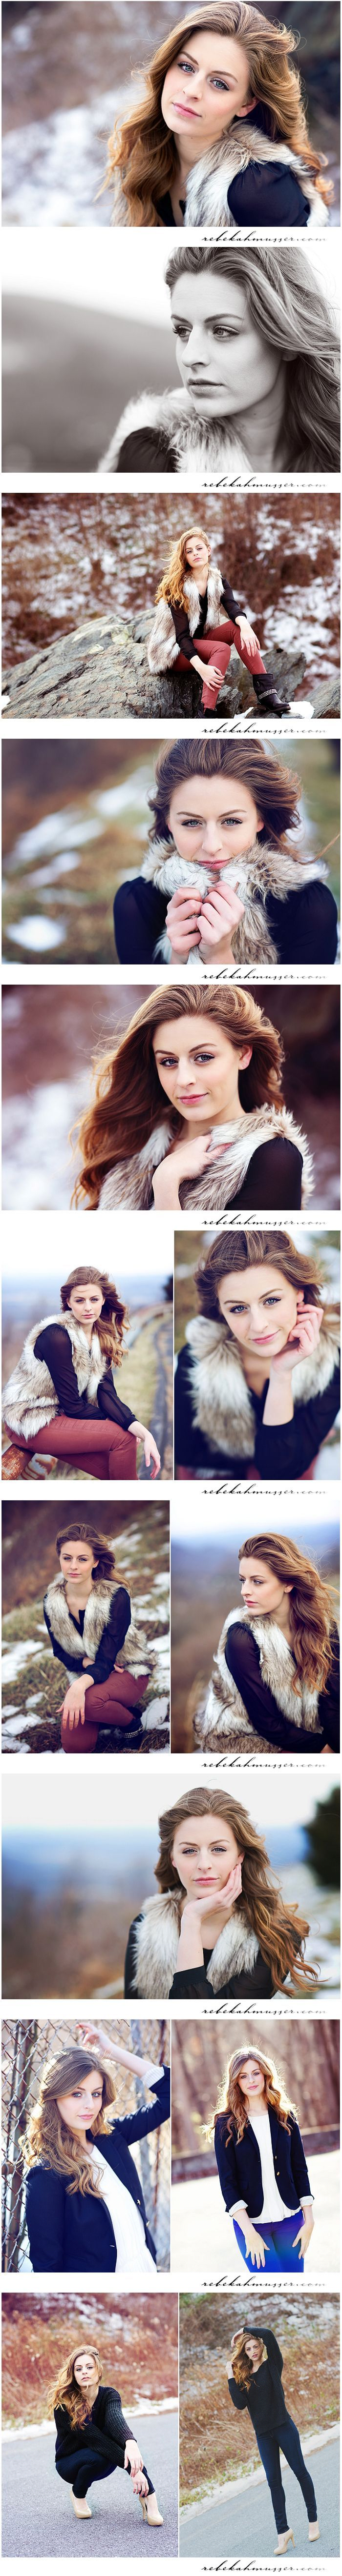 Winter senior picture ideas for girls. Winter senior pictures. Senior pictures girls winter. Winter senior photography.